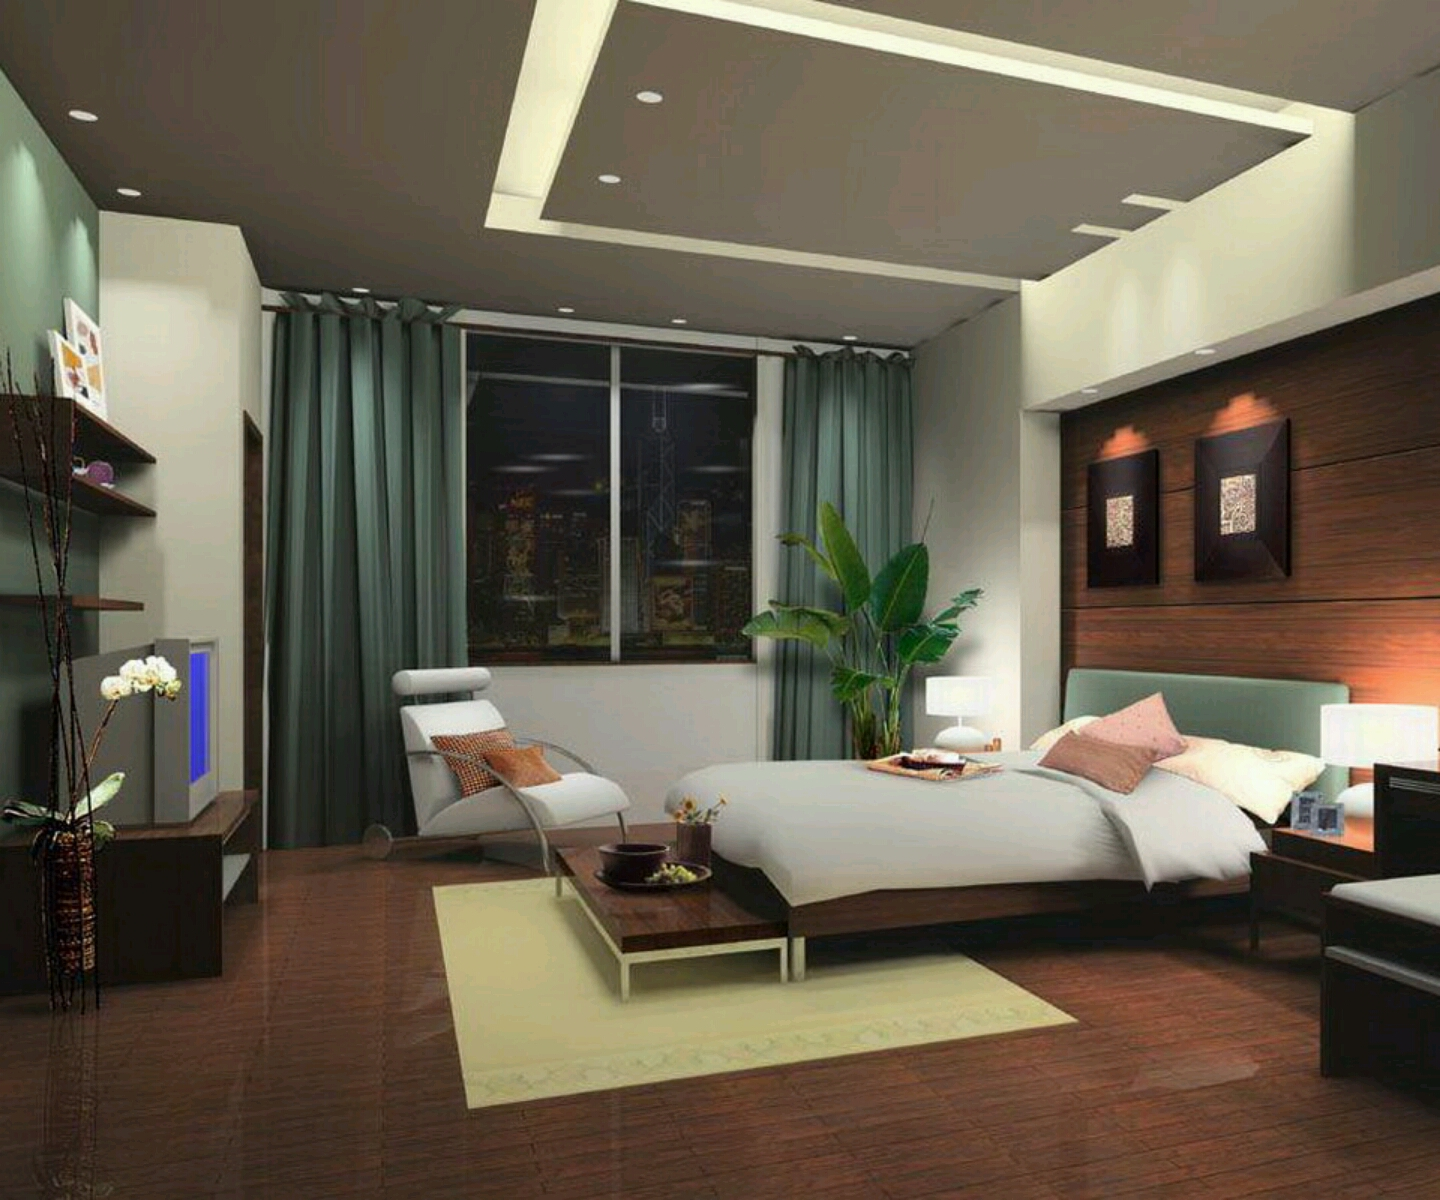 new home designs latest. modern bedrooms designs best ideas.